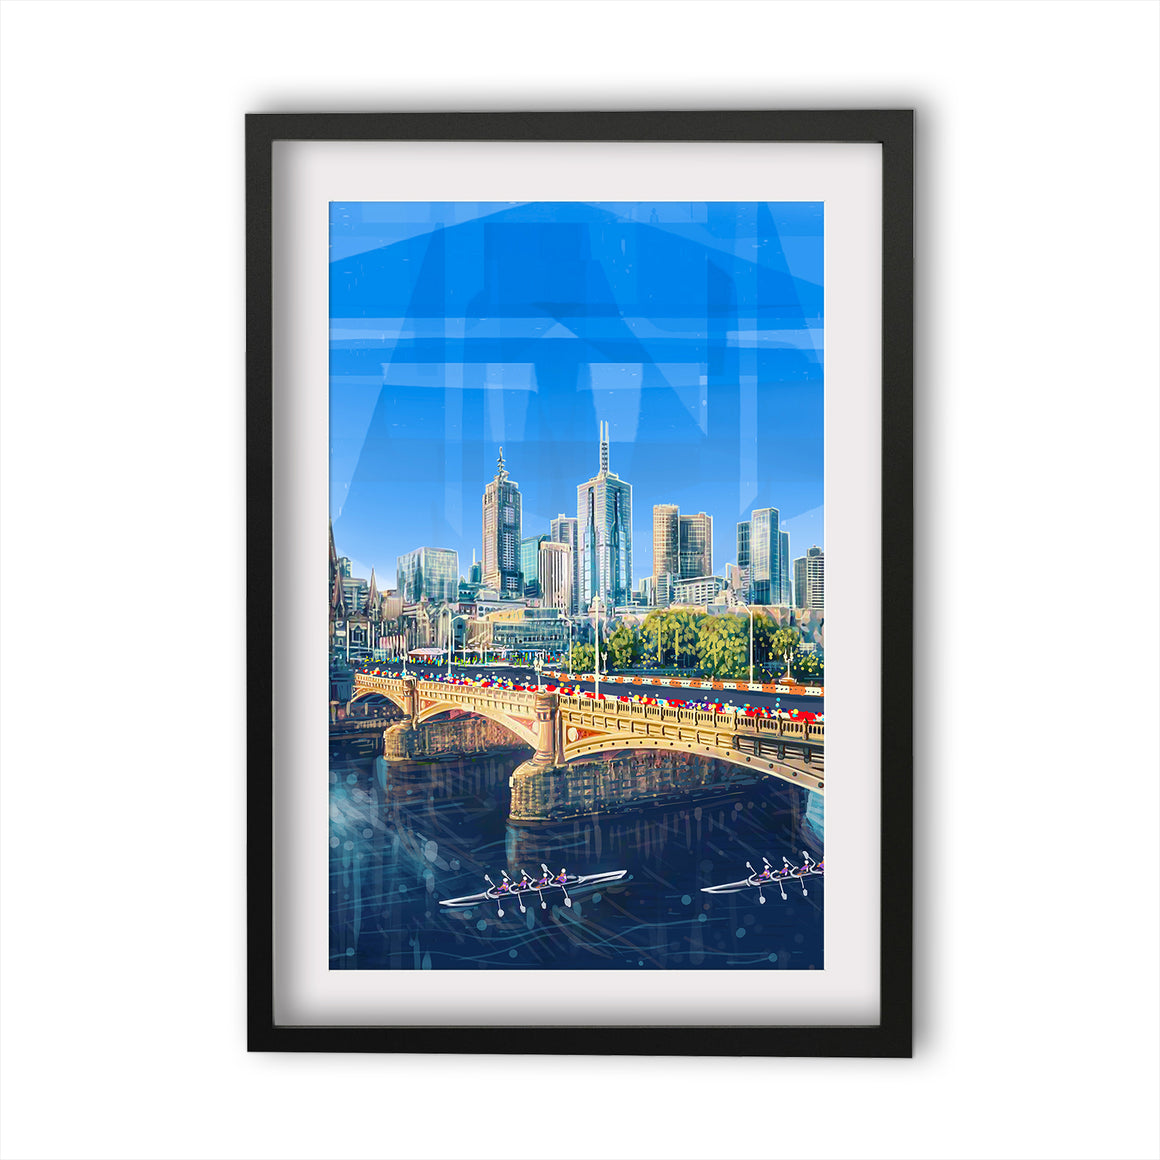 Print (Iconic) - Melbourne Princess Bridge